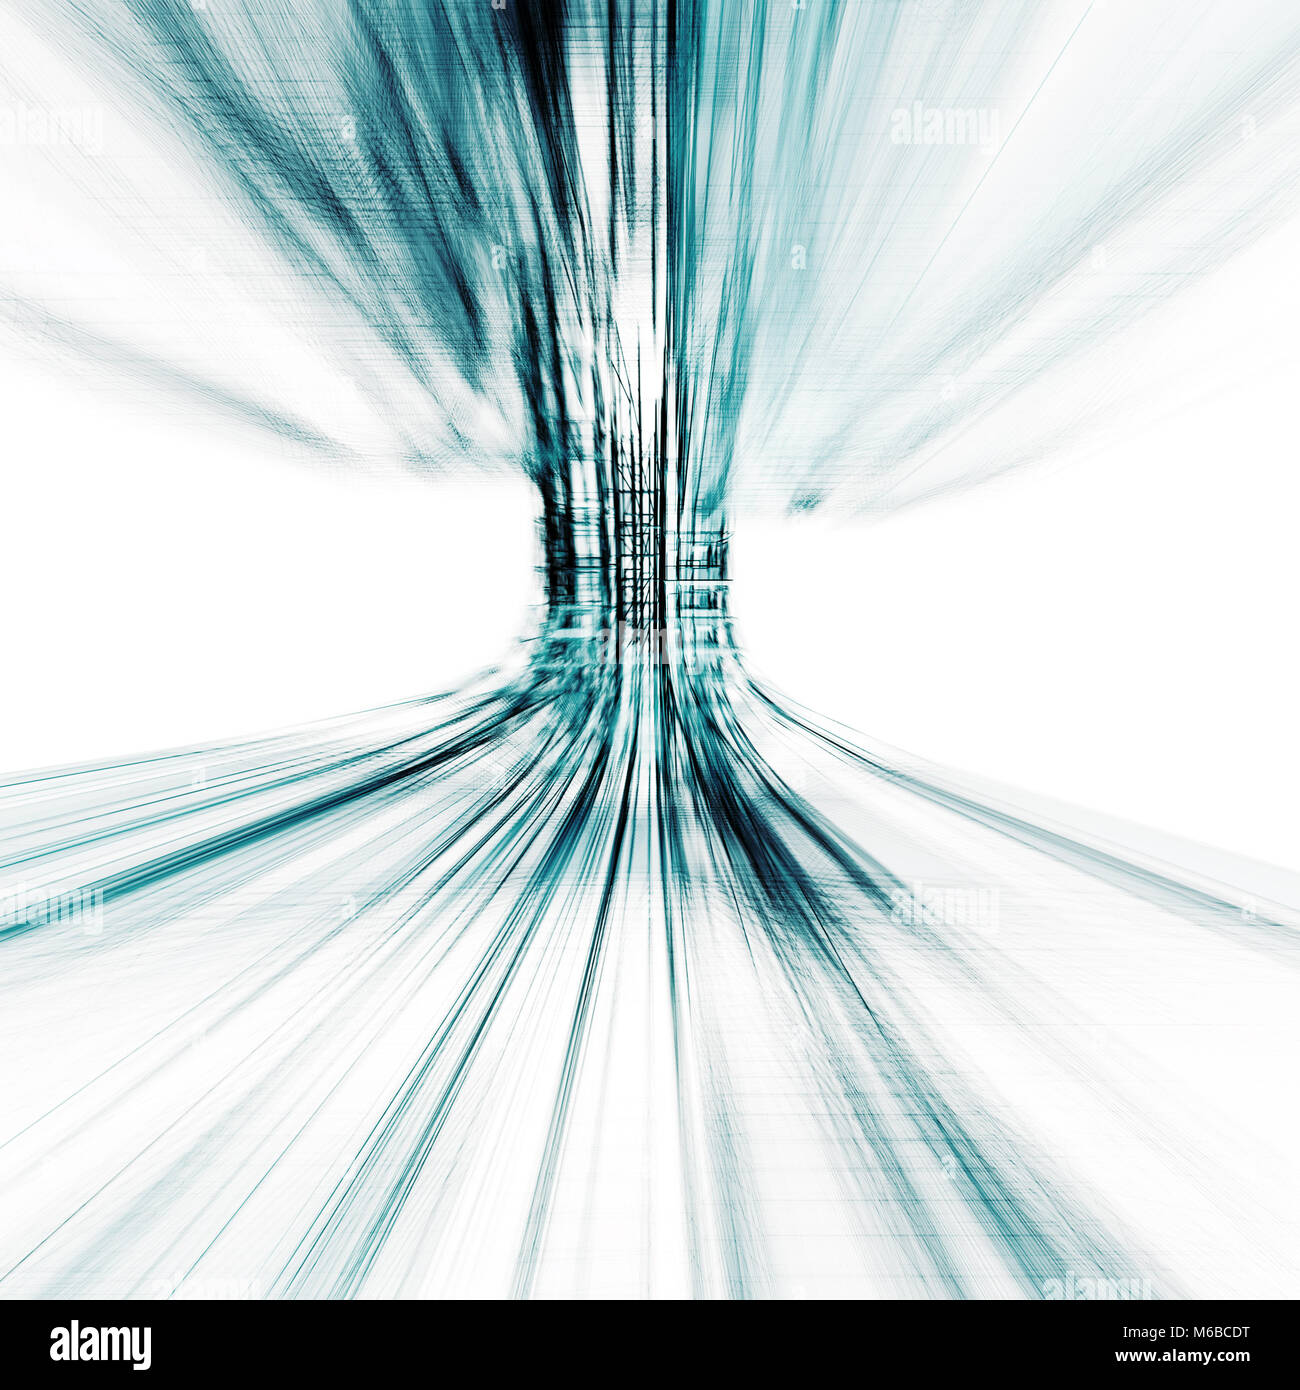 Transparent abstract 3d rendering - Stock Image